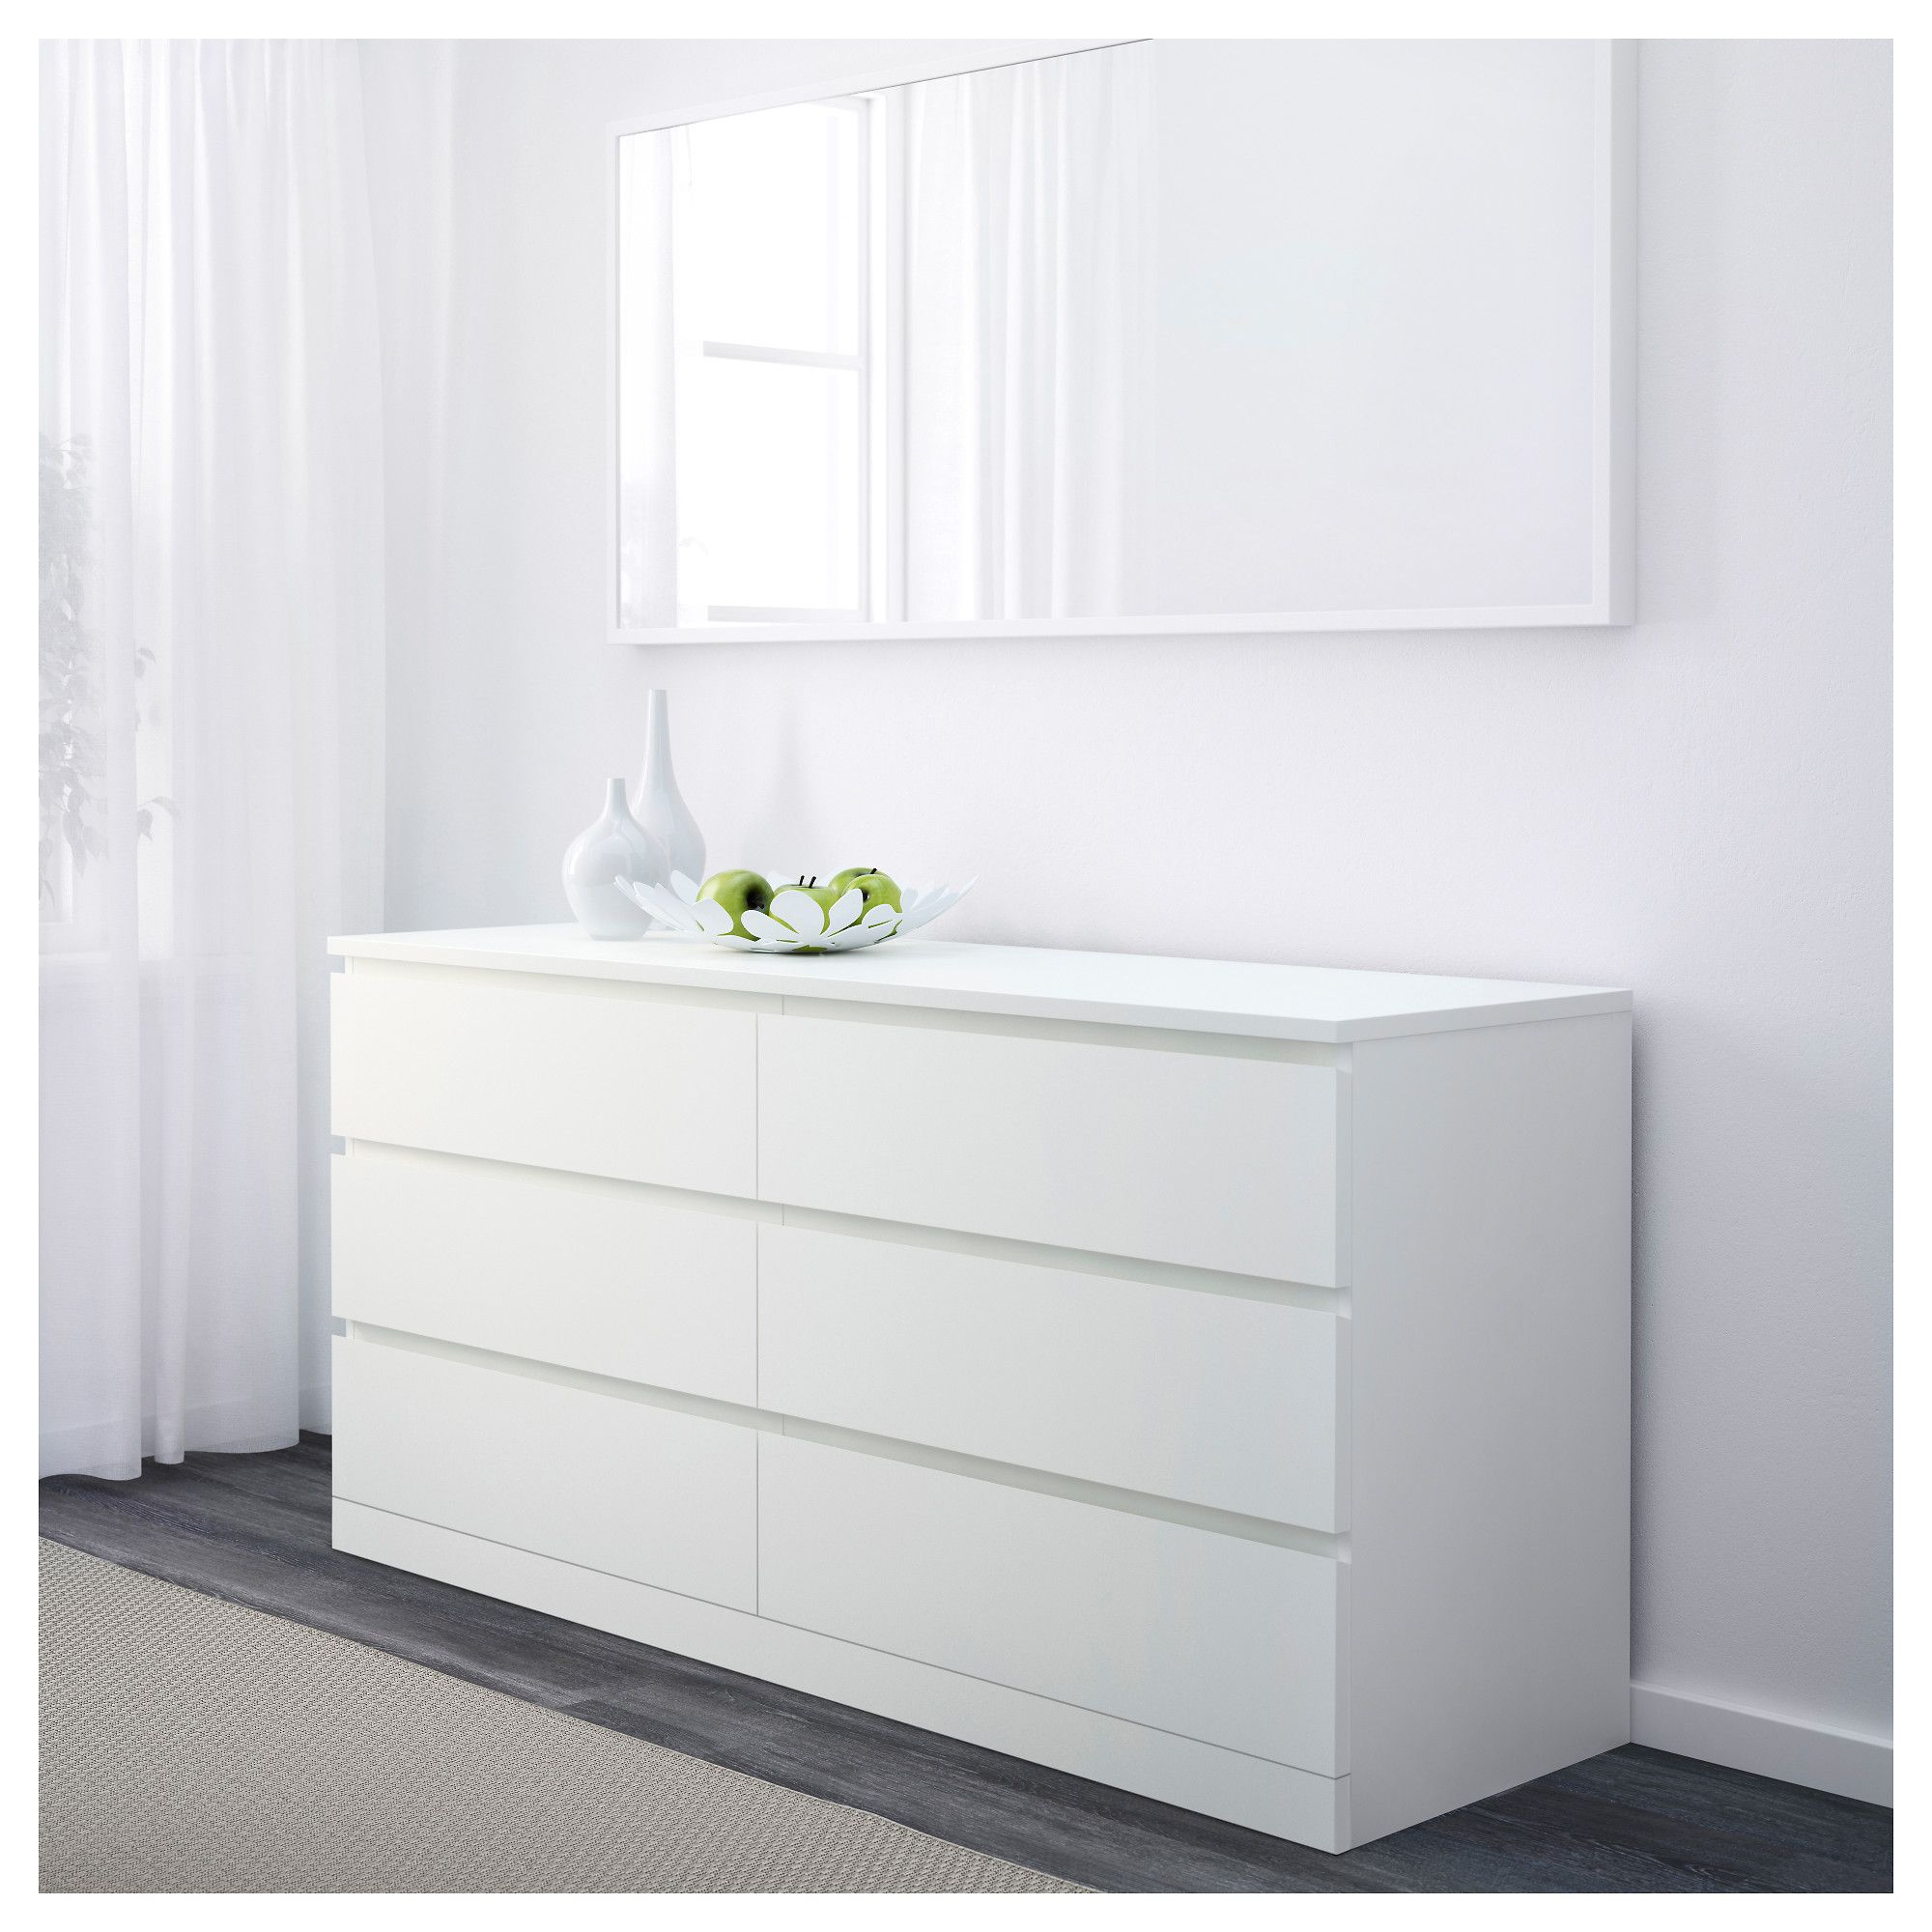 6-drawer dresser, white, 63x30 3/4 \